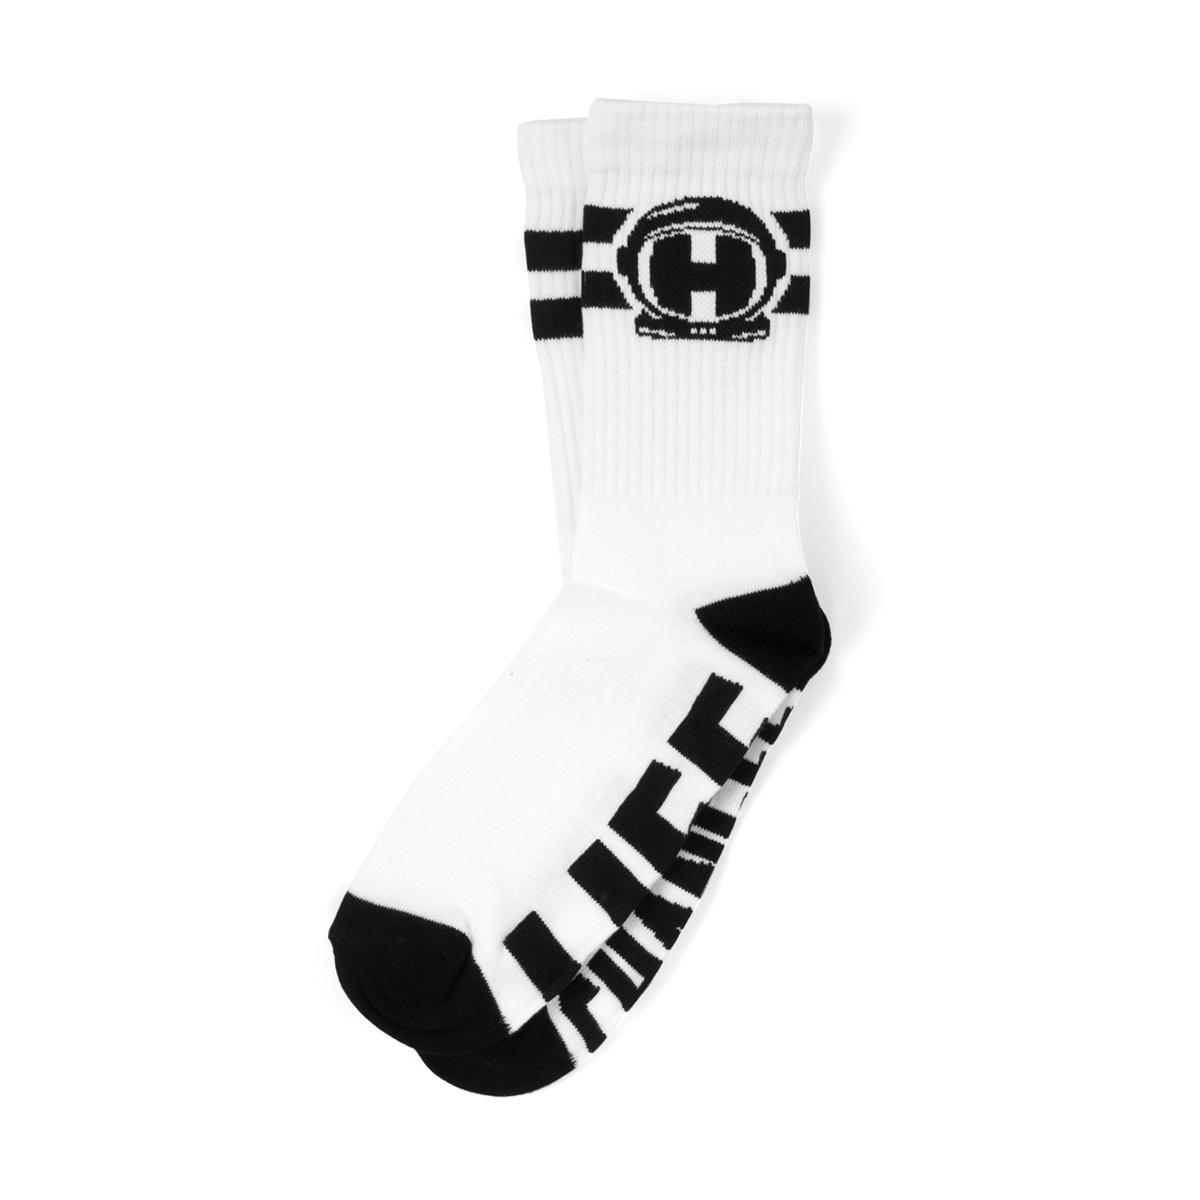 Home Team Spaceman Socks